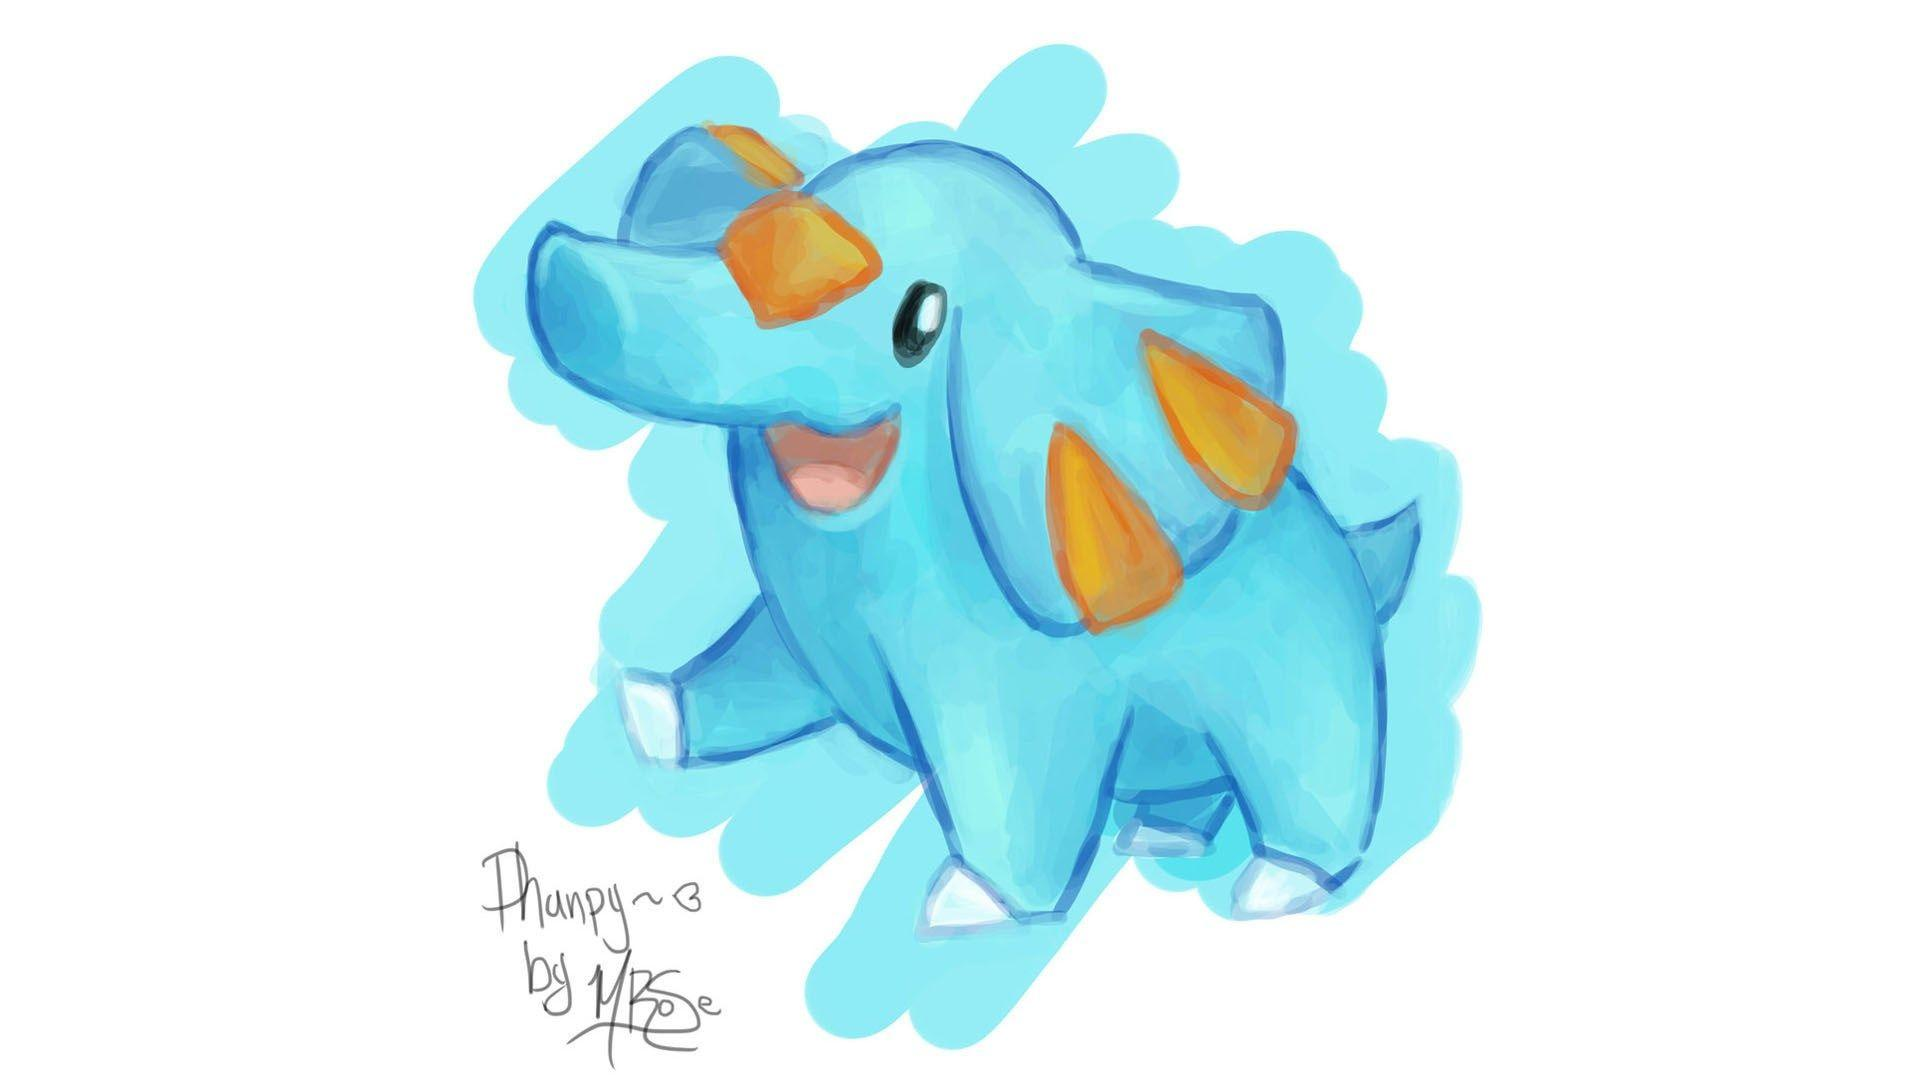 120065, phanpy category - free wallpaper and screensavers for phanpy ...